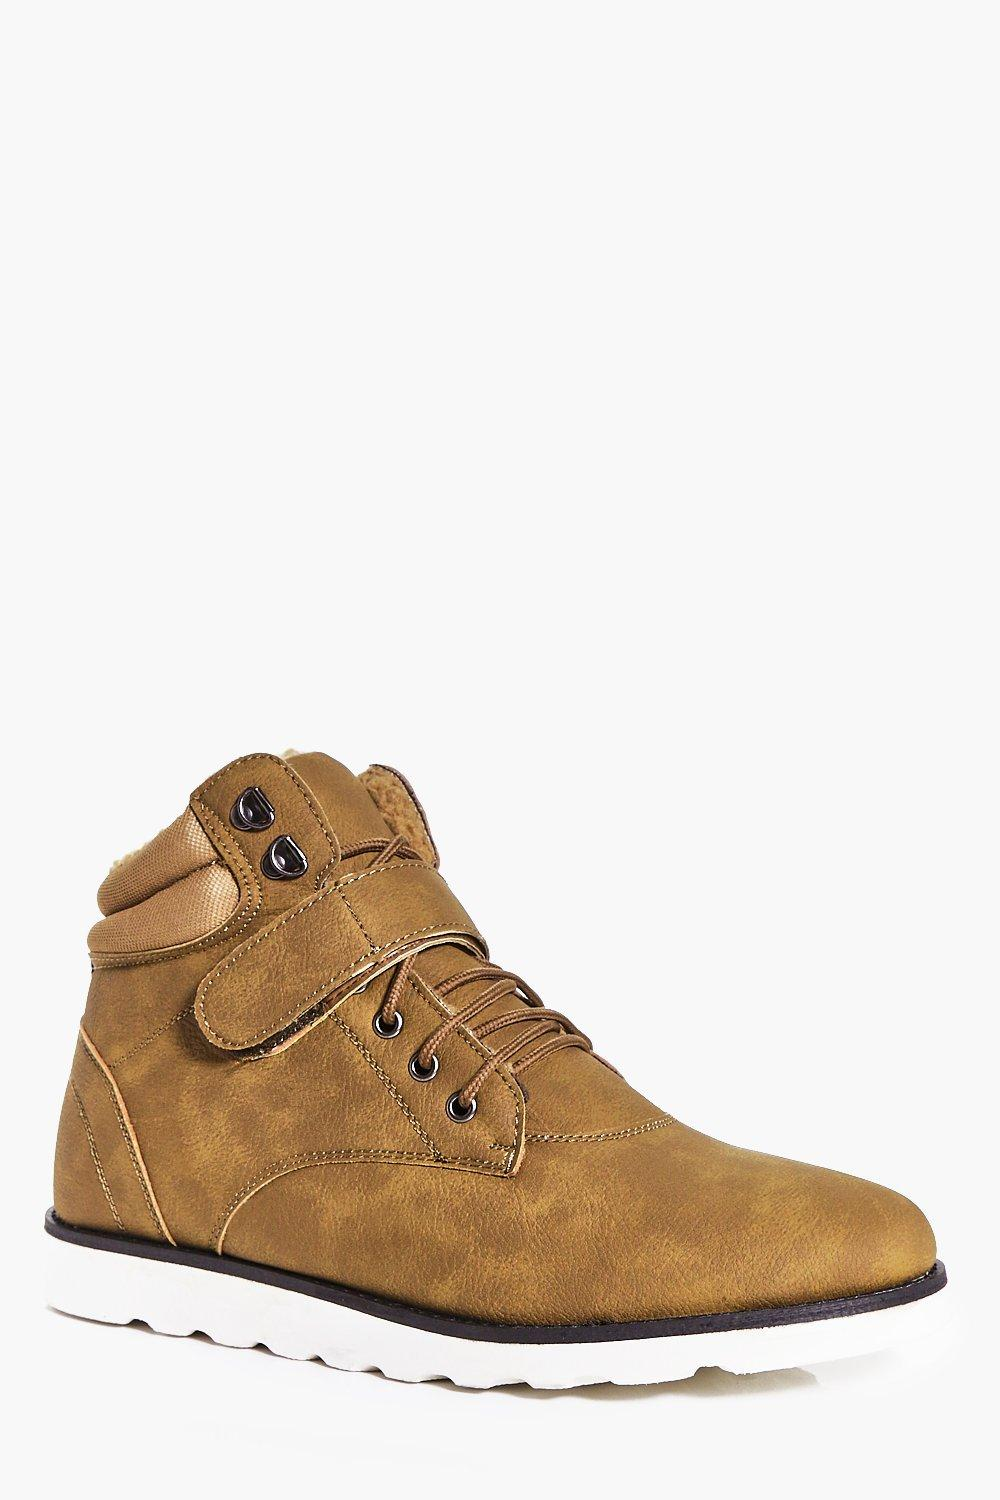 Lace Up Worker Boots